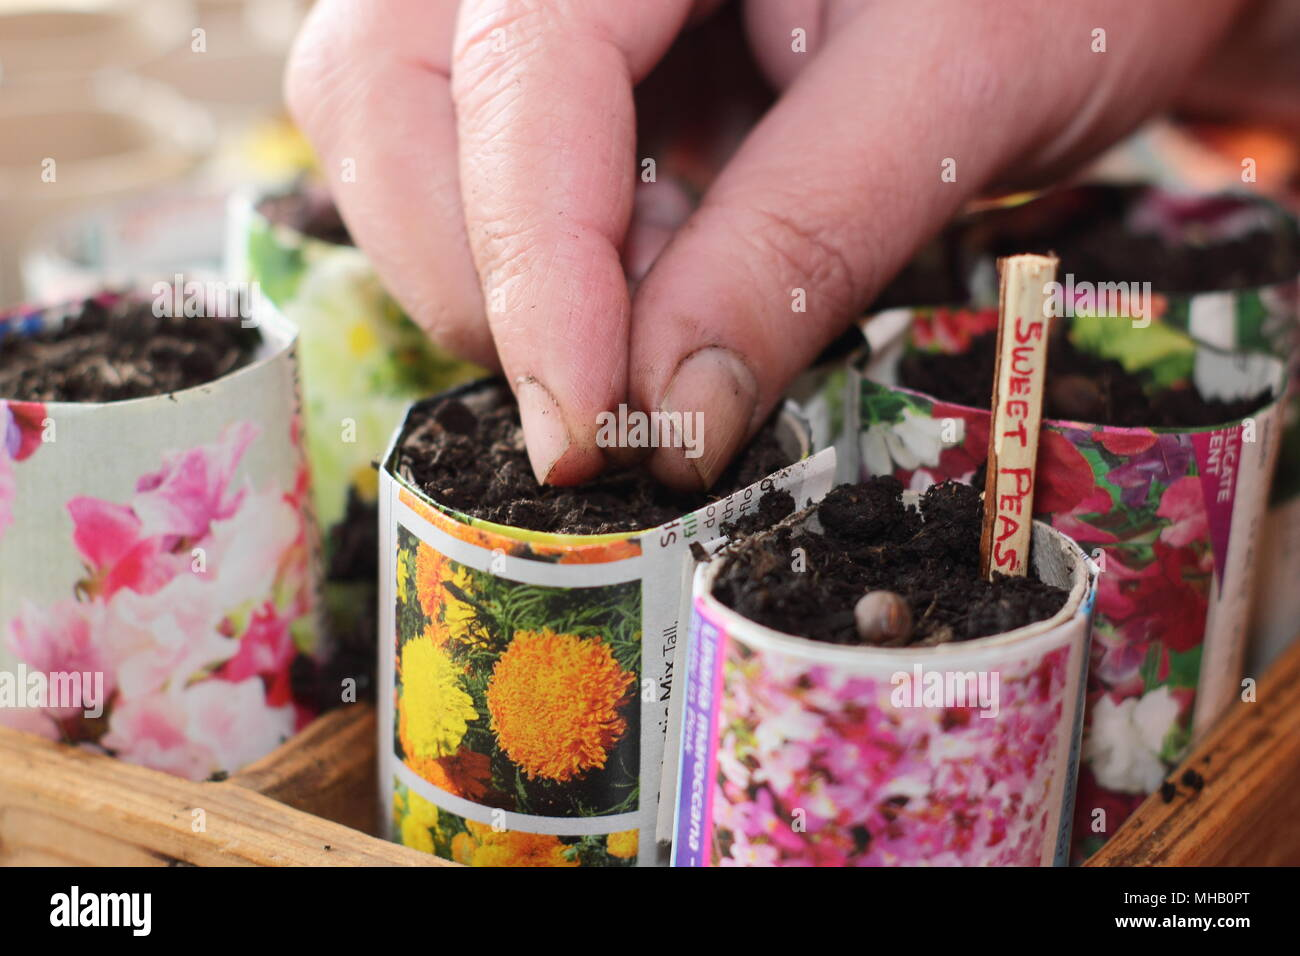 Lathyrus Odoratus Sowing Sweet Pea Seeds In Homemade Paper Pots